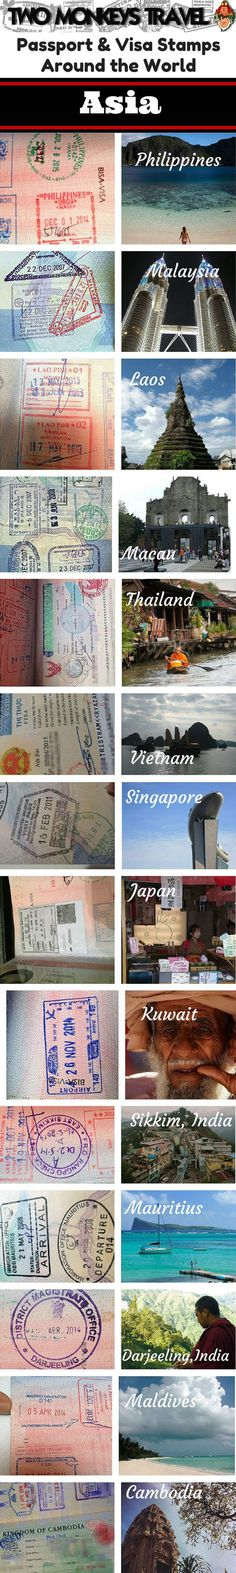 #PassportStamps are one of the greatest souvenirs we get from our travels around the world. They are so much more than blotches of ink on paper; they remind us of places we've been, triggering much-treasured memories of the things we saw, the people we met and the adventures we had along the way. #TravelStories #Asia #TwoMonkeysTravelGroup